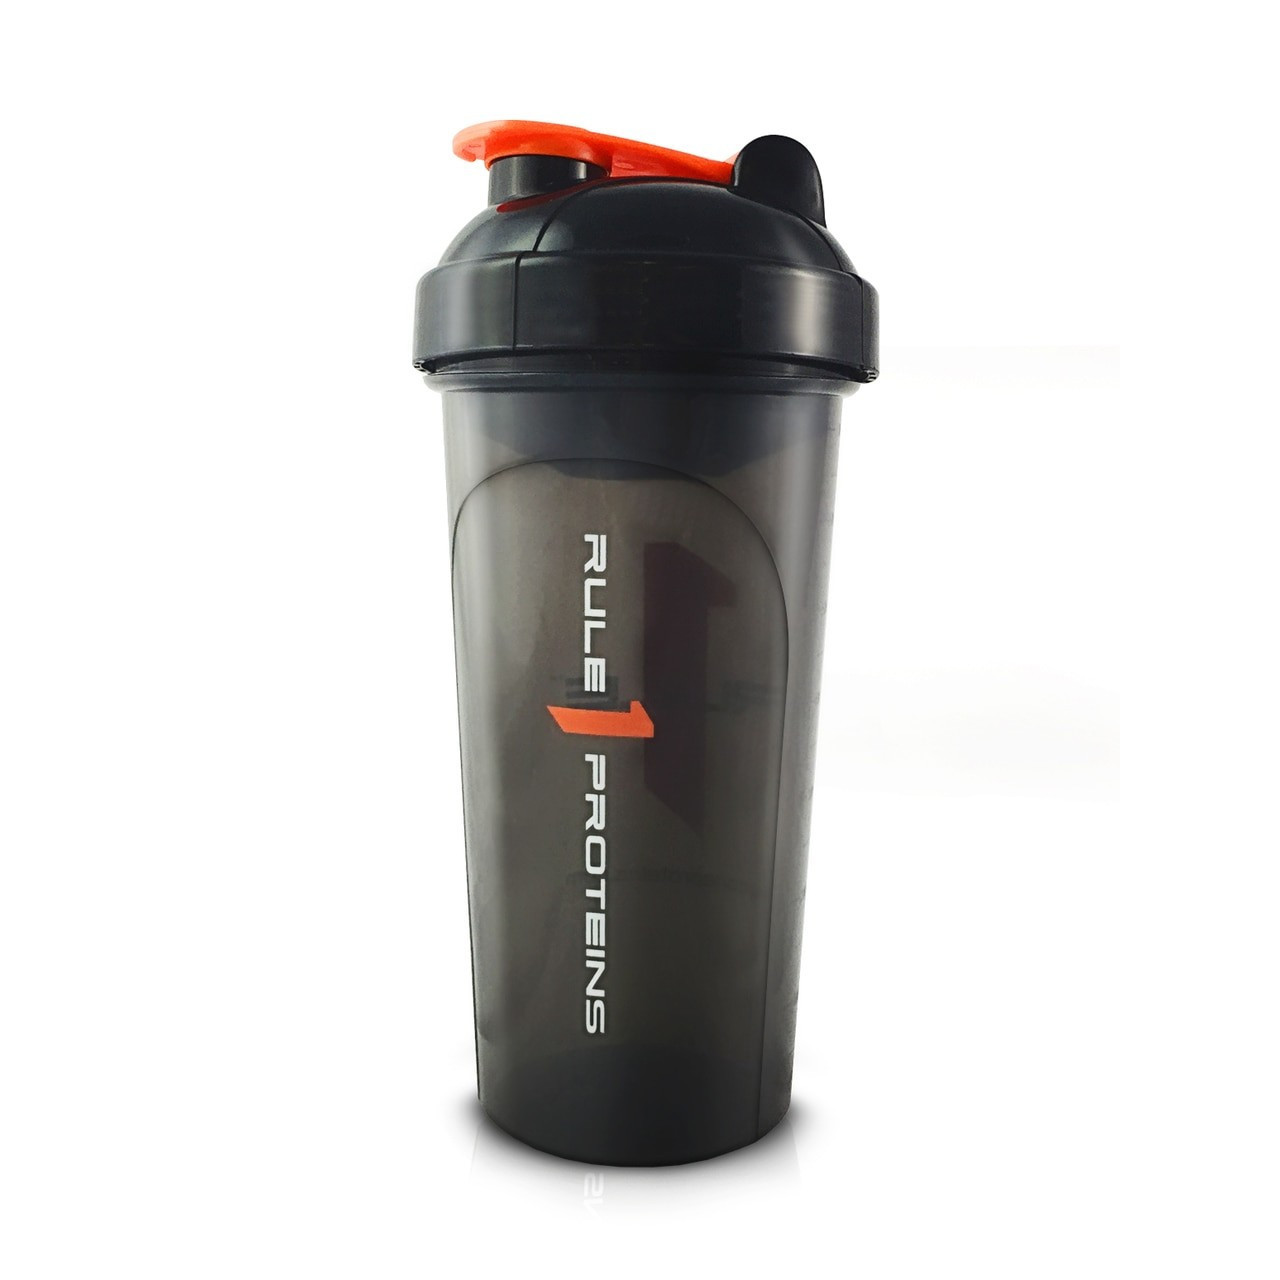 R1_Shaker Cups